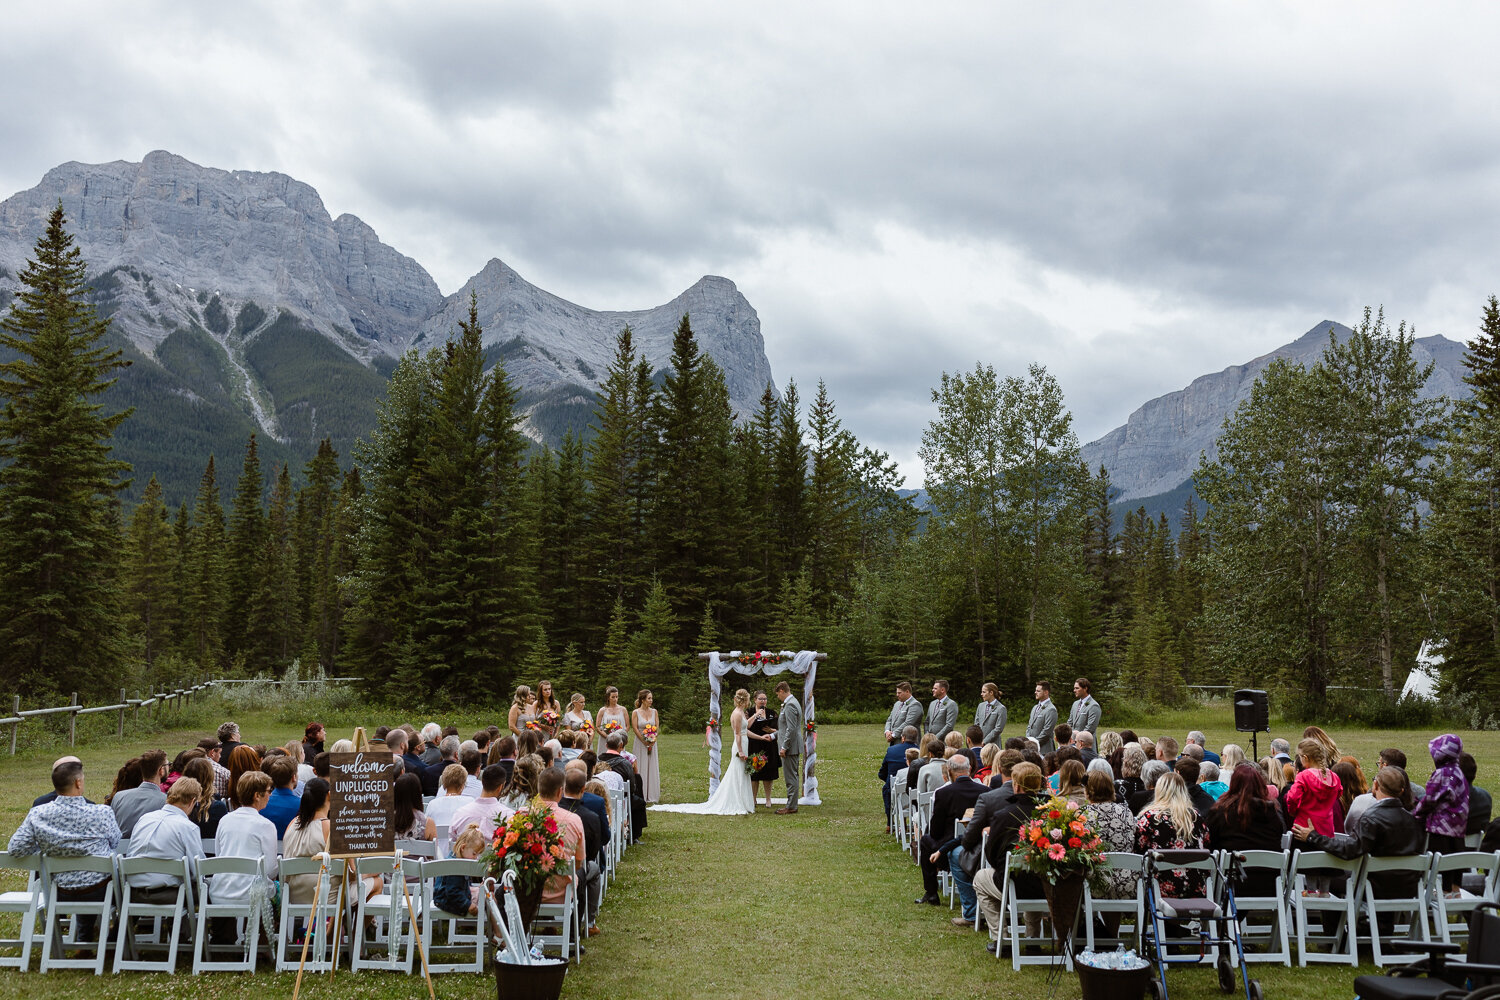 61-Canmore-Alberta-Real-Wedding-Best-Wedding-Photographers-84.JPG